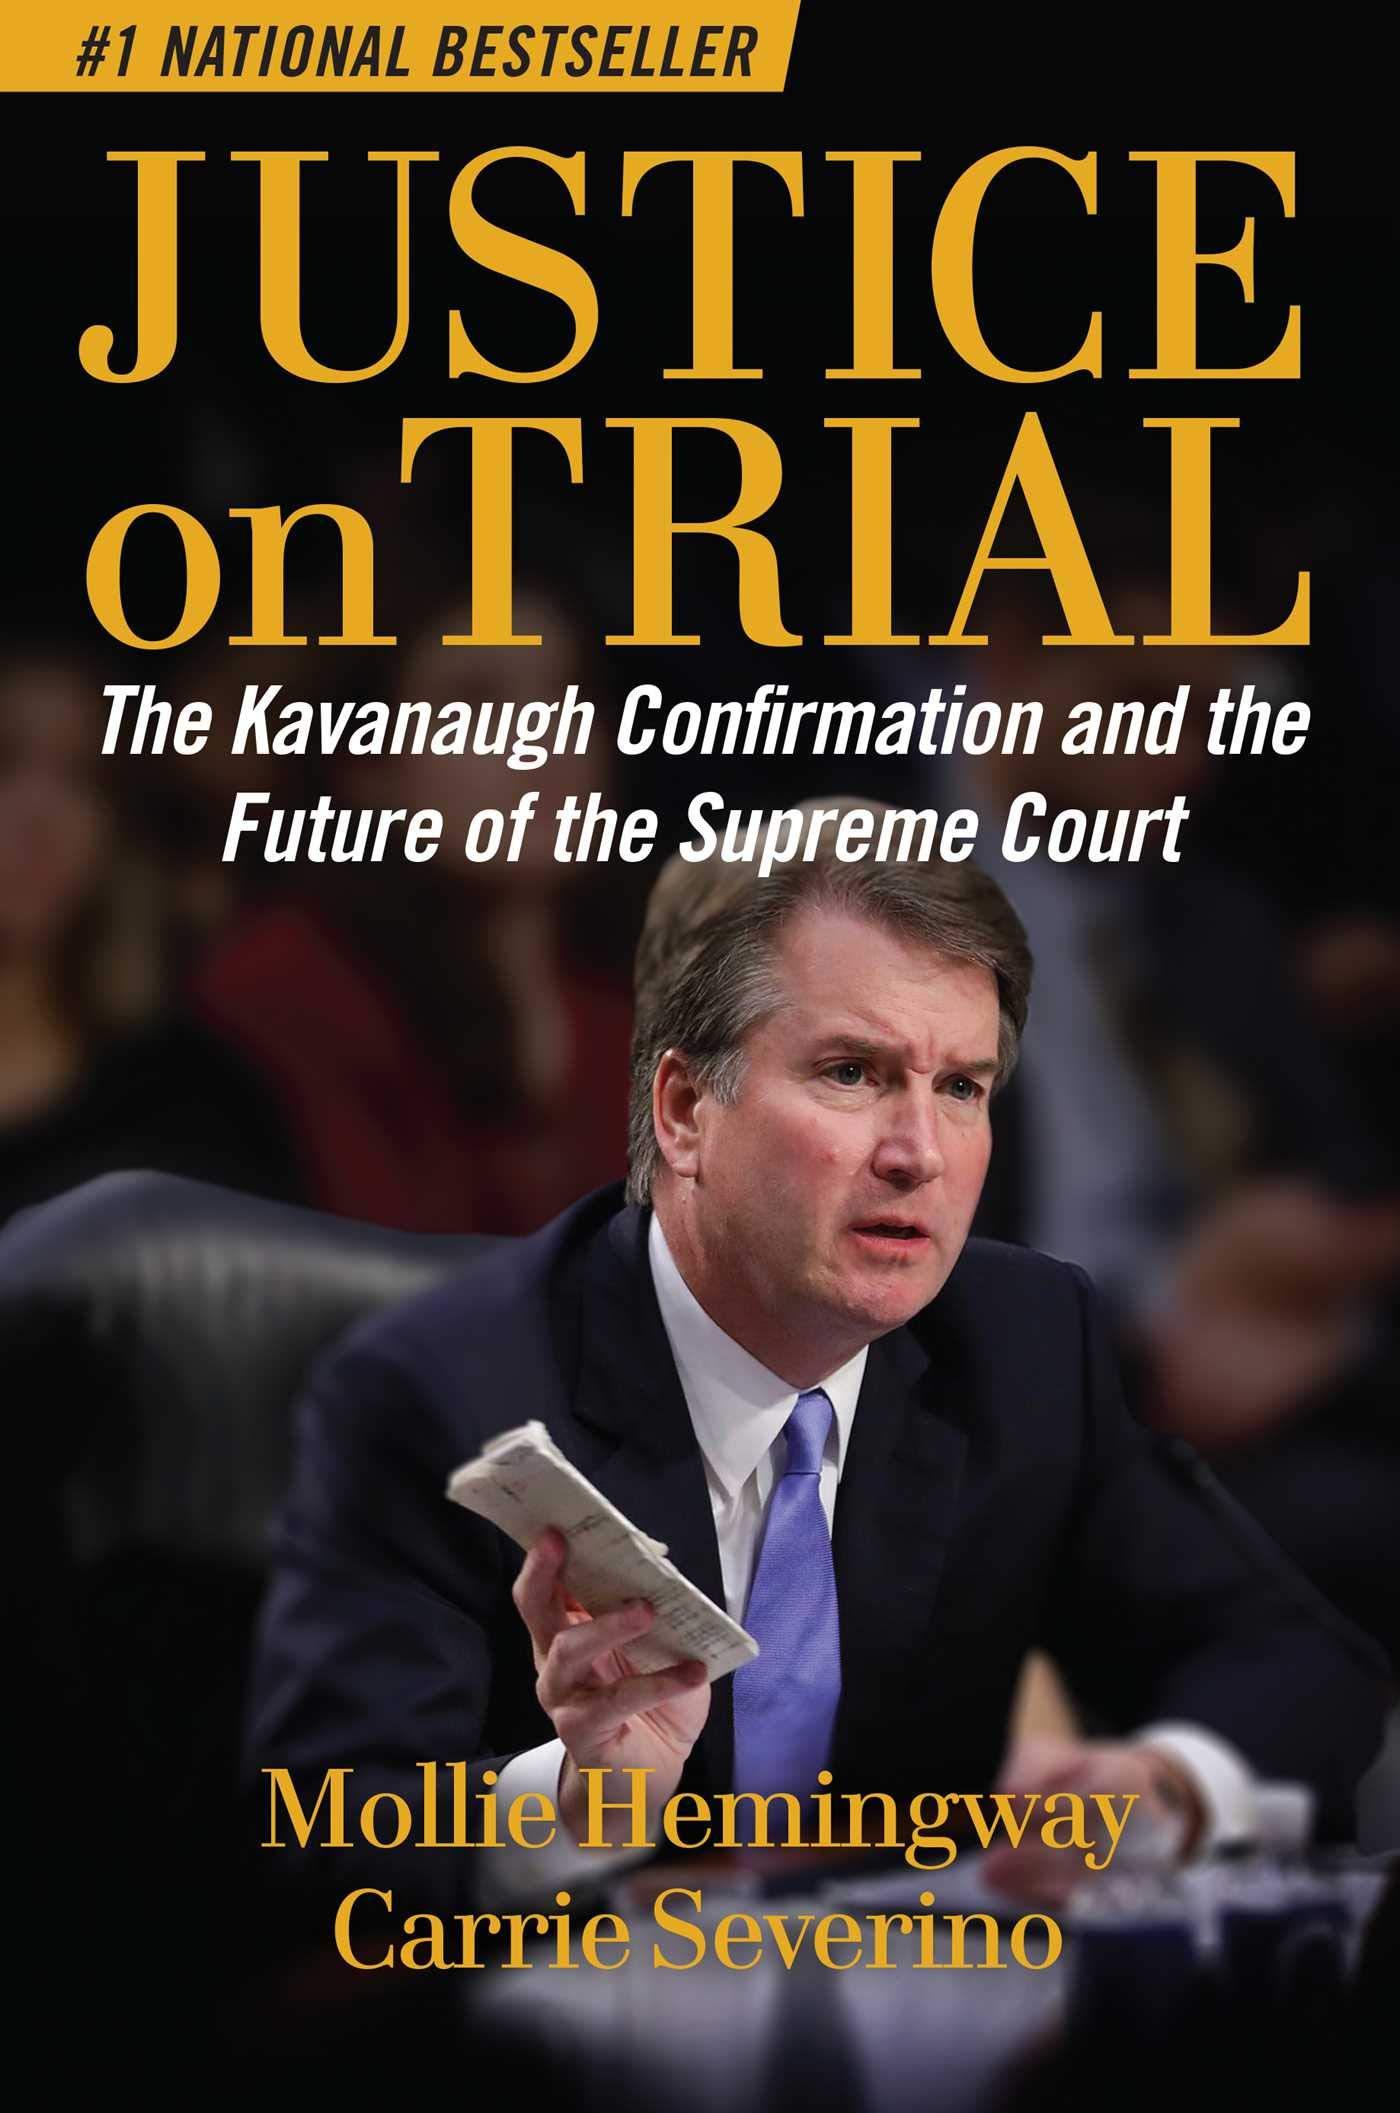 Justice on Trial: The Kavanaugh Confirmation and the Future of the Supreme Court by Regnery Publishing